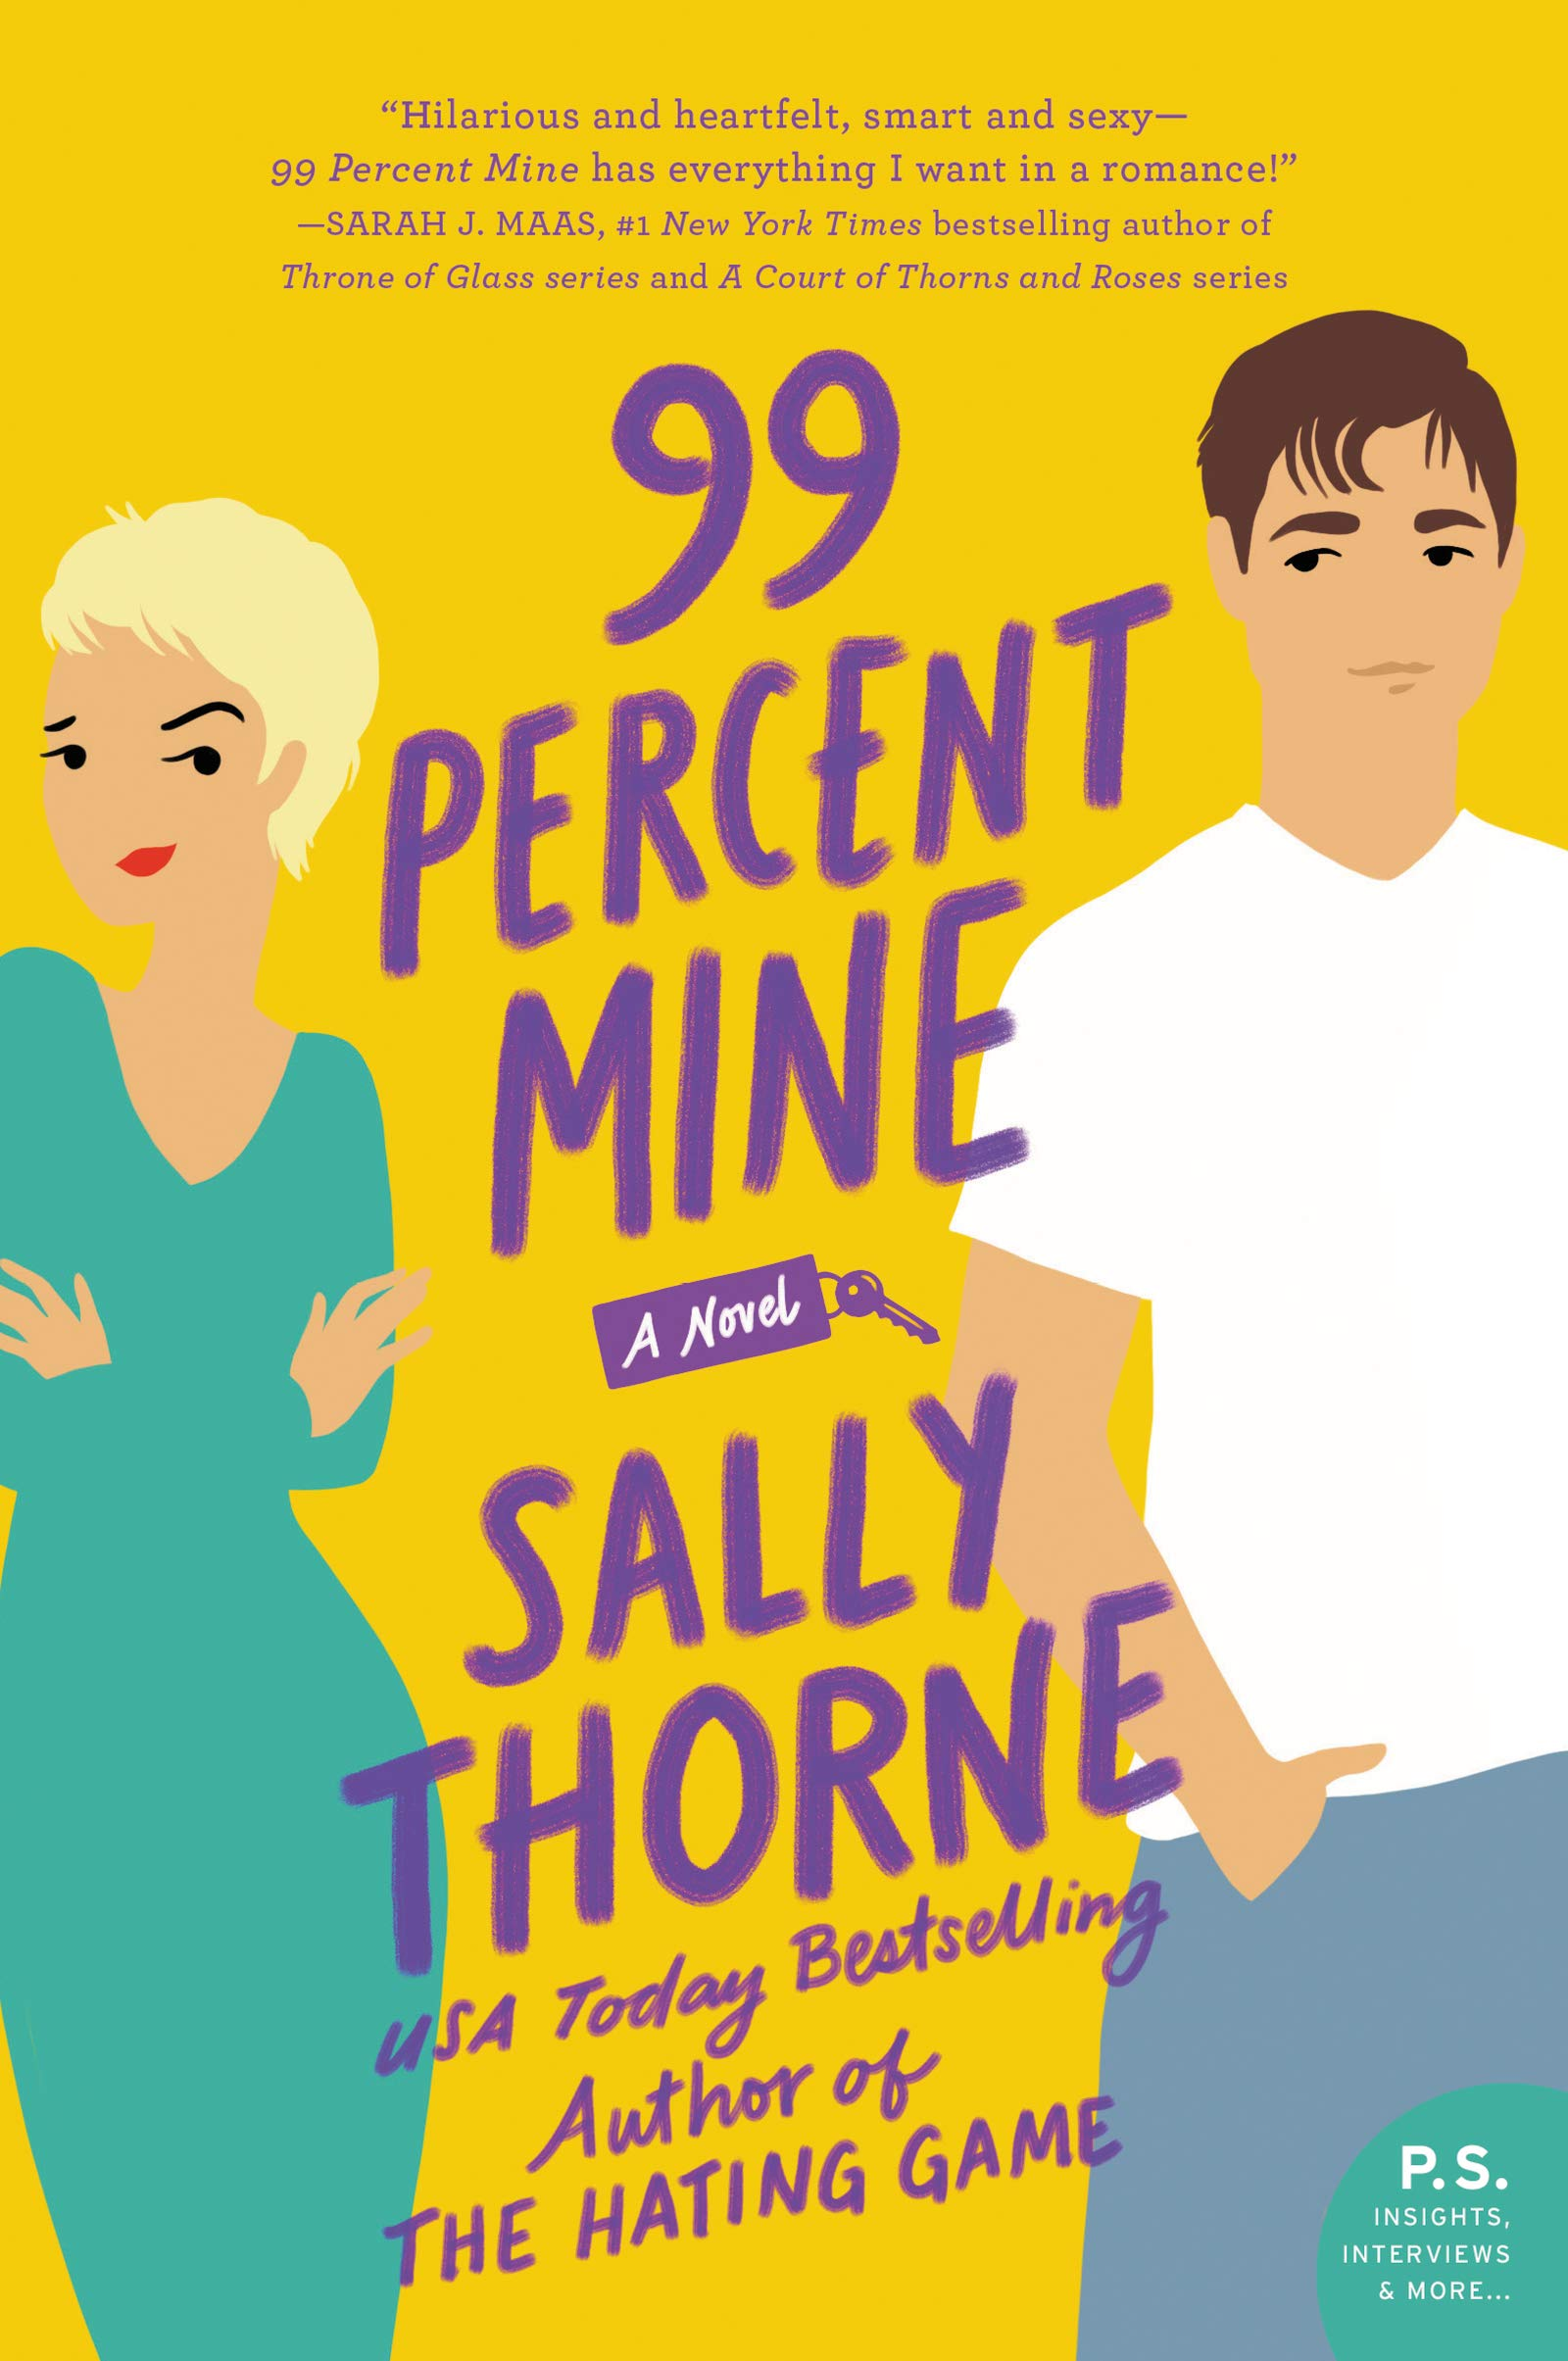 "99 Percent Mine by Sally Thorne - Bad on Paper Podcast Book of the MonthRating: 2/599 Percent Mine is narrated by its main character, Darcy, a rebellious ex-professional photographer who is notorious for running away from her problems. But when her passport is misplaced and her grandmother's house, which she inherited with her twin brother Jamie, needs renovating, she stay put. Firstly, to make sure her brother doesn't ruin the charm of the home, and secondly, because her life long crush and childhood neighbor, Tom, is the contractor. Tom and Darcy have always loved each other since youth and he even once told her his feelings when they were 18, which then Darcy responded by running to Italy the next day. But now that he's back in close proximity and newly single, maybe this is her second shot. This book is a quick read and entertaining, but the problem was that I didn't like Darcy. She's VERRY crude and aggressively. It also took A LOOONNGGG time (like 200 pages long) to get the romance to culminate, which to me is the best part and the reason I read a romance novel. Lastly, the ending is also very anti-climatic which is the worst unless there is a sequel. I had high hopes for the book because Sally Thorne's first book, The Hating Game, is RAVED about (haven't read it). It seems to me this was a classic ""publishing house pushes bestselling author to release second book ASAP which then makes author scramble with sub-par plot.""Is it a must read? No, but I am curious to see what The Hating Game is like, but I'm going to go in with lower expectations. If you want a good brain-candy romance novel, try out Jasmine Guillory's books!"